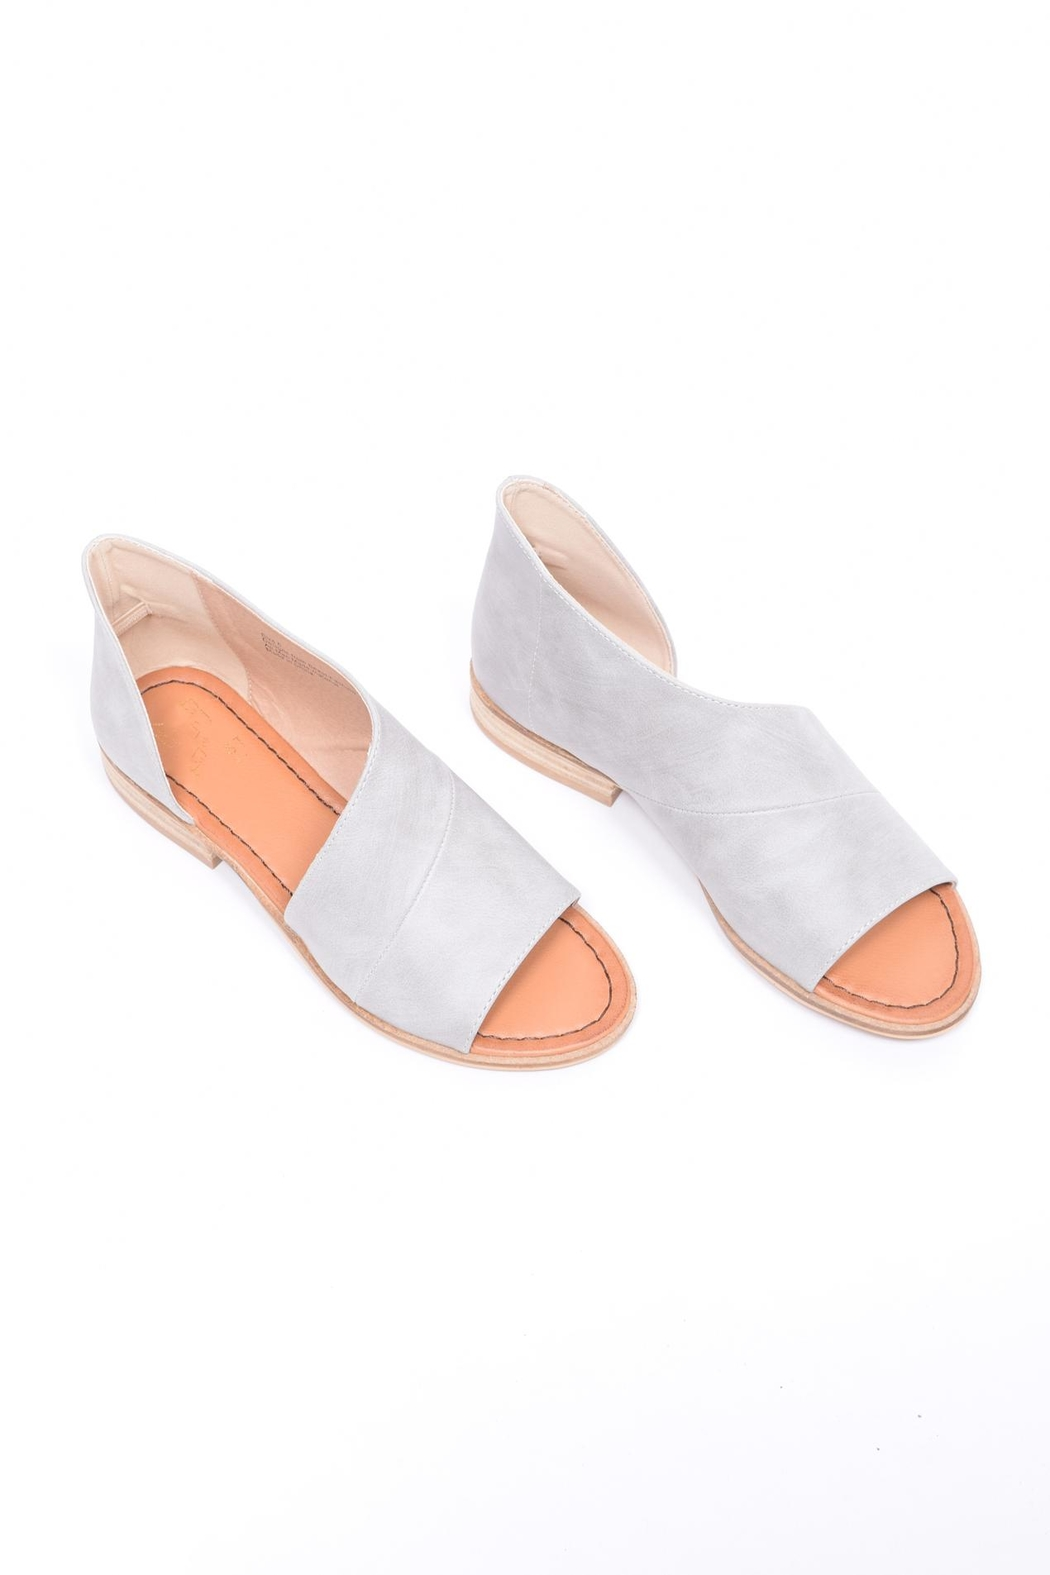 Unbranded Cutout Peep-Toe Flat - Front Full Image